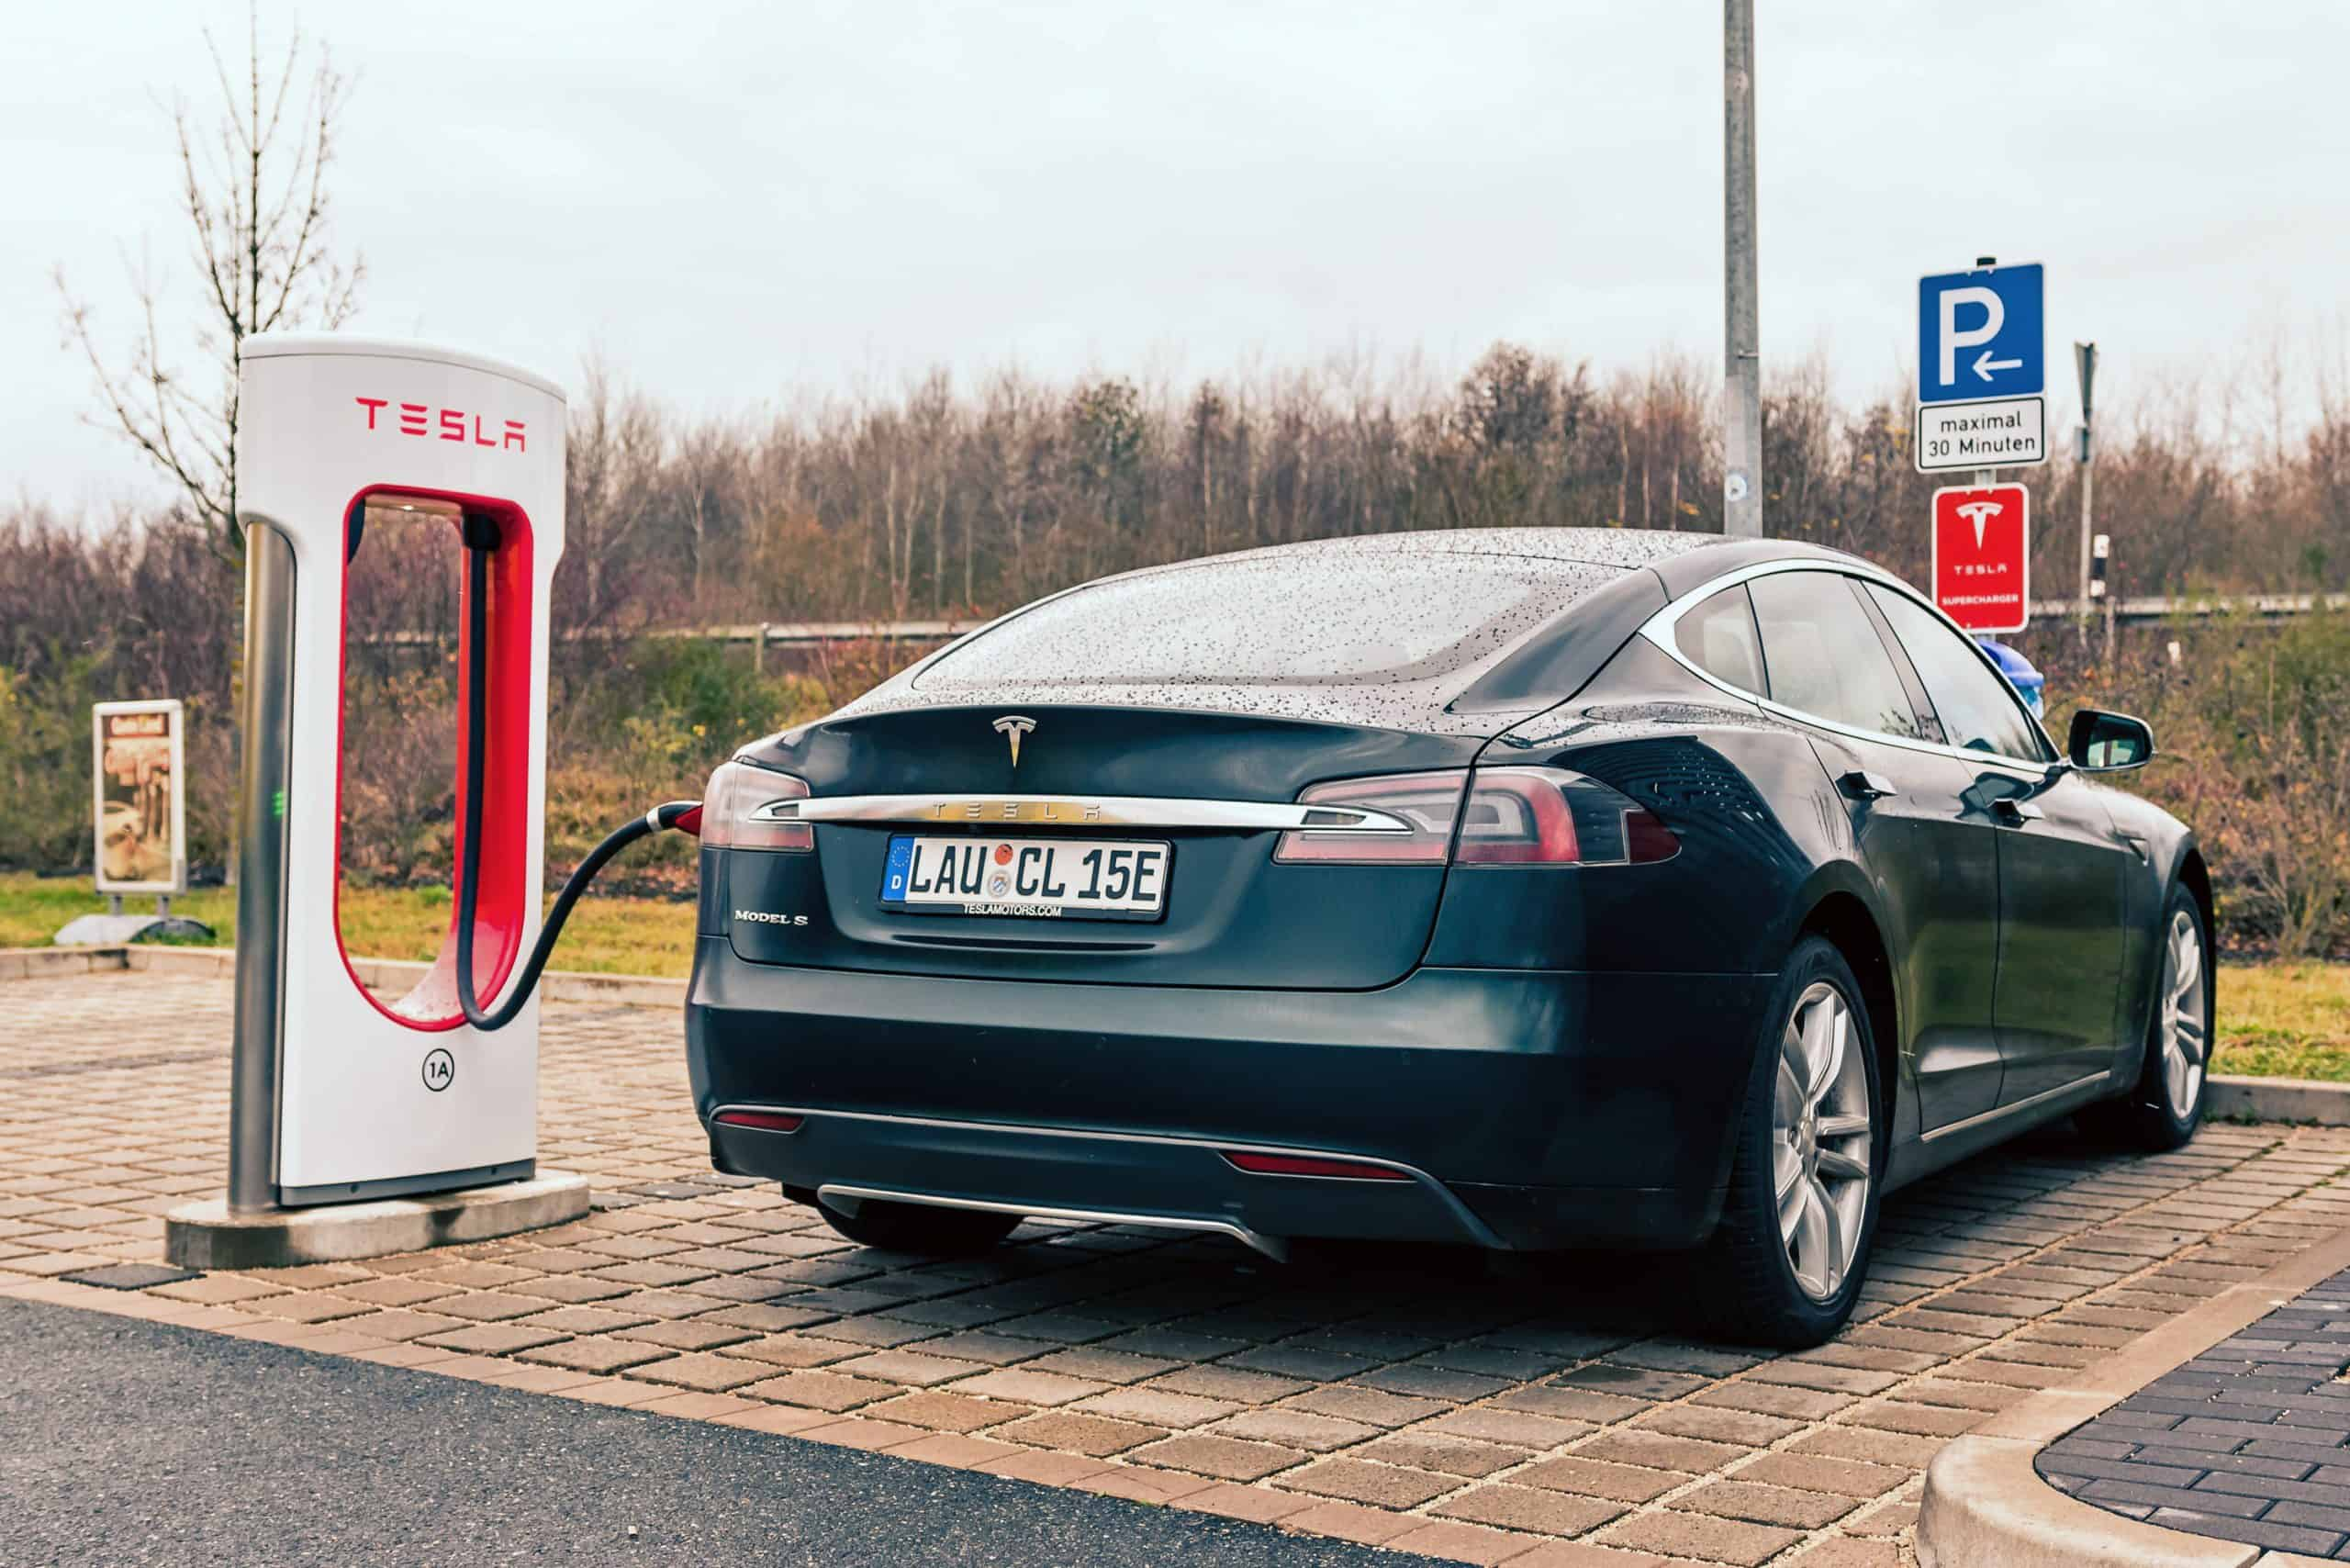 How Long Does It Take to Supercharge a Tesla?